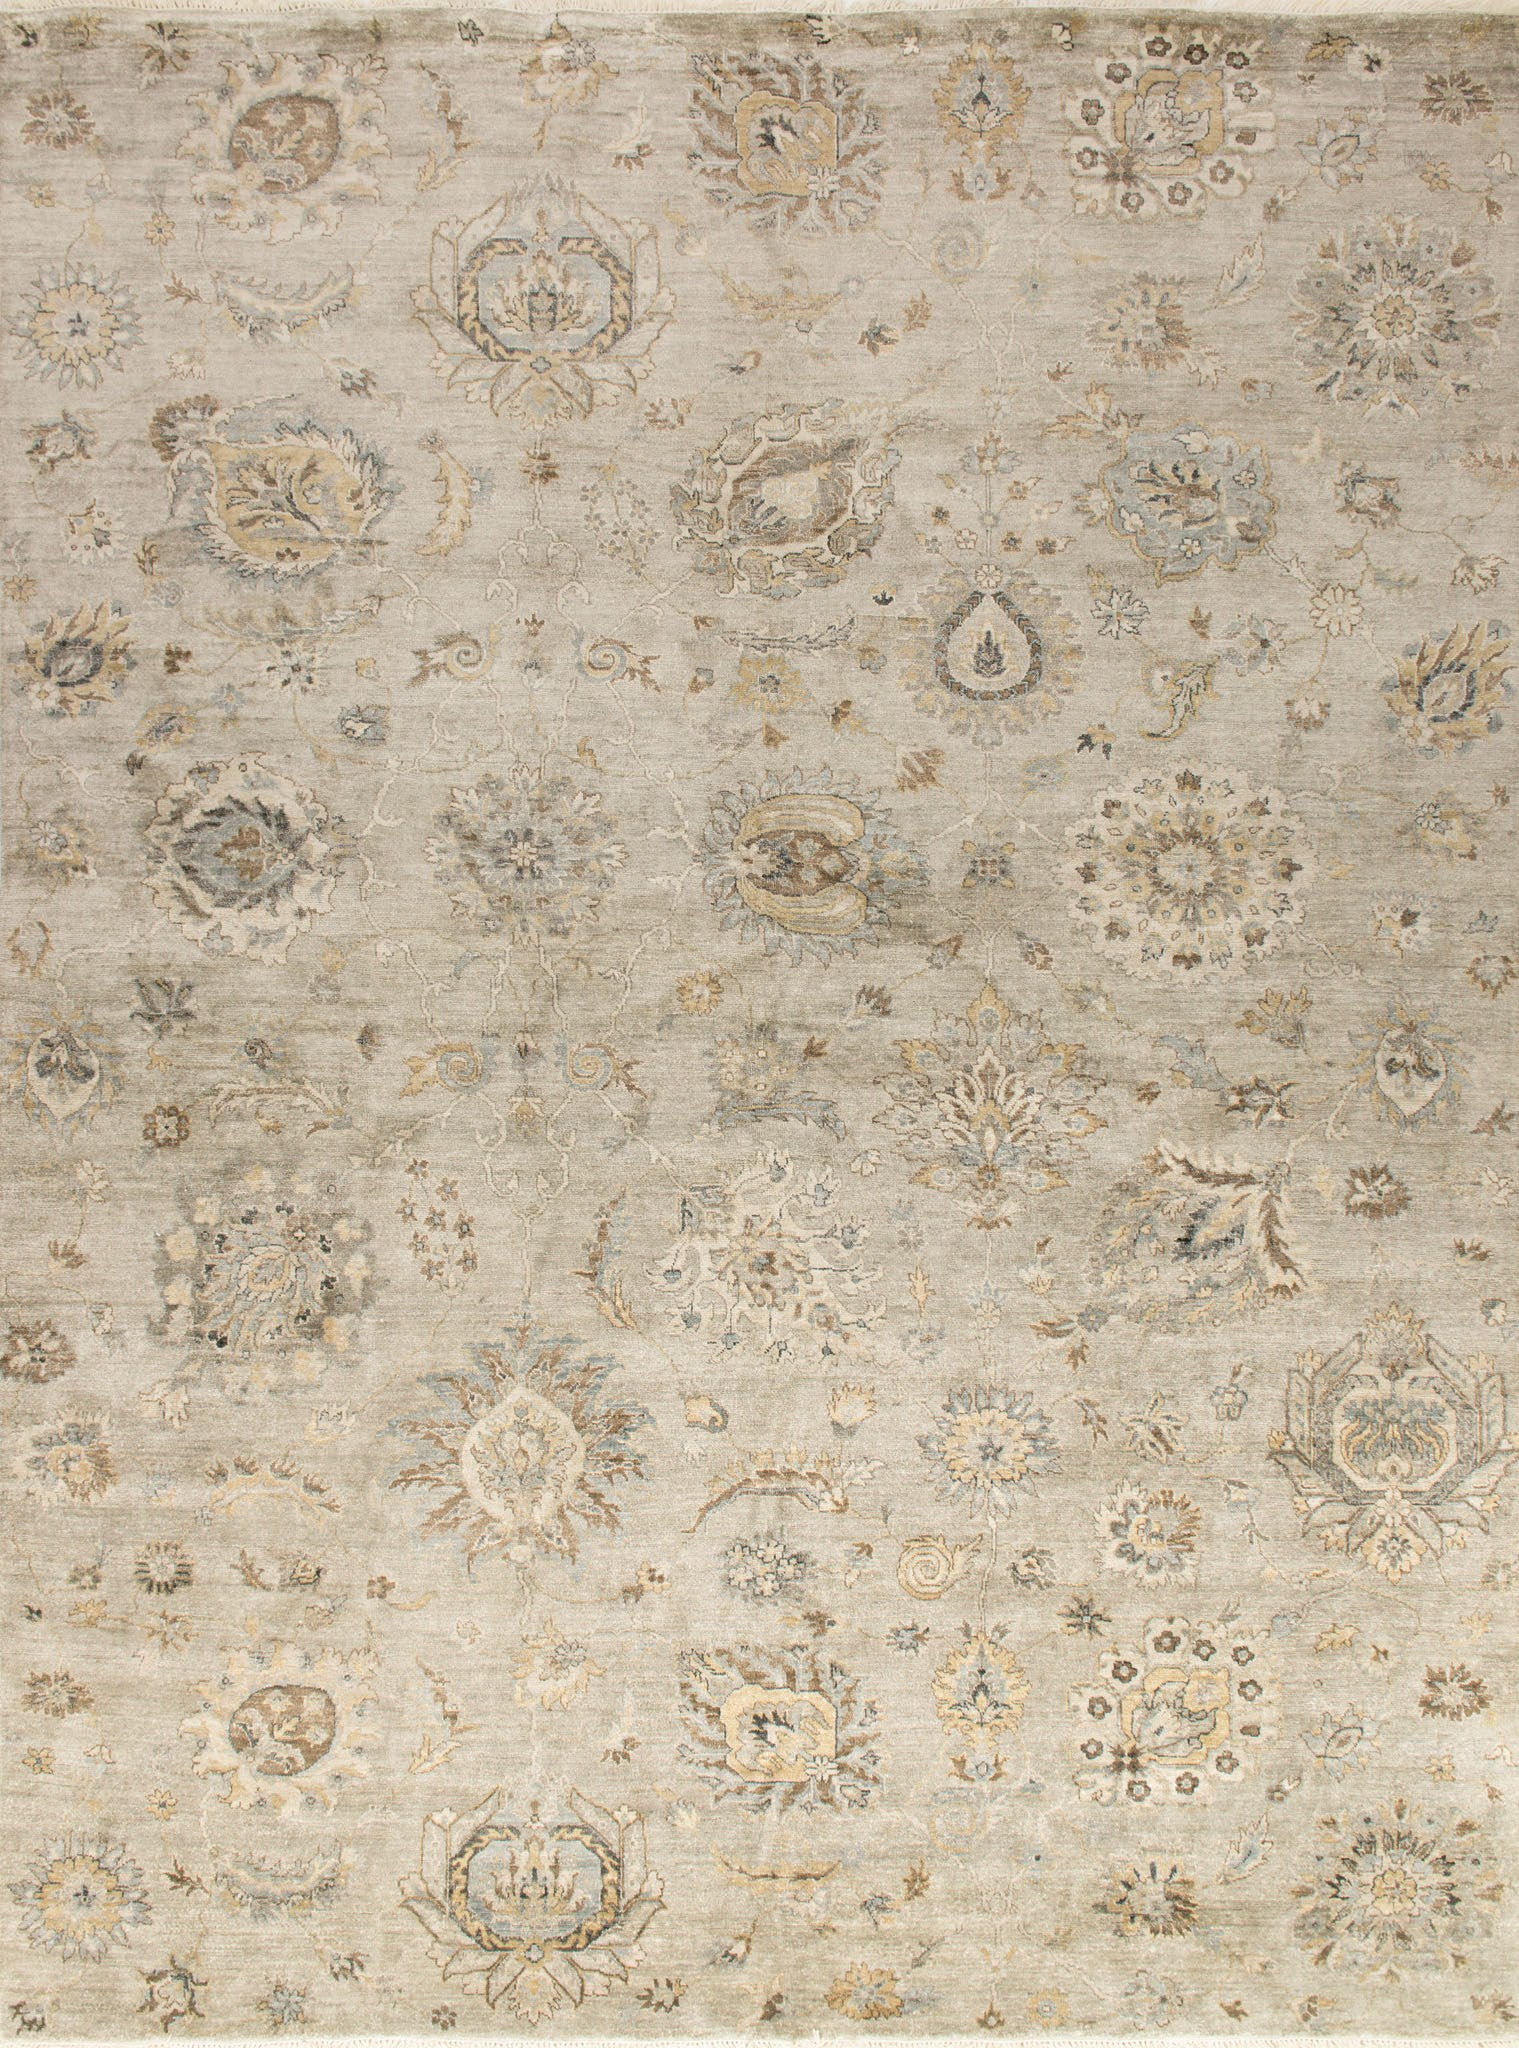 Loloi Kensington KG-07 Silver Area Rug by Henrietta Spencer-Churchill main image